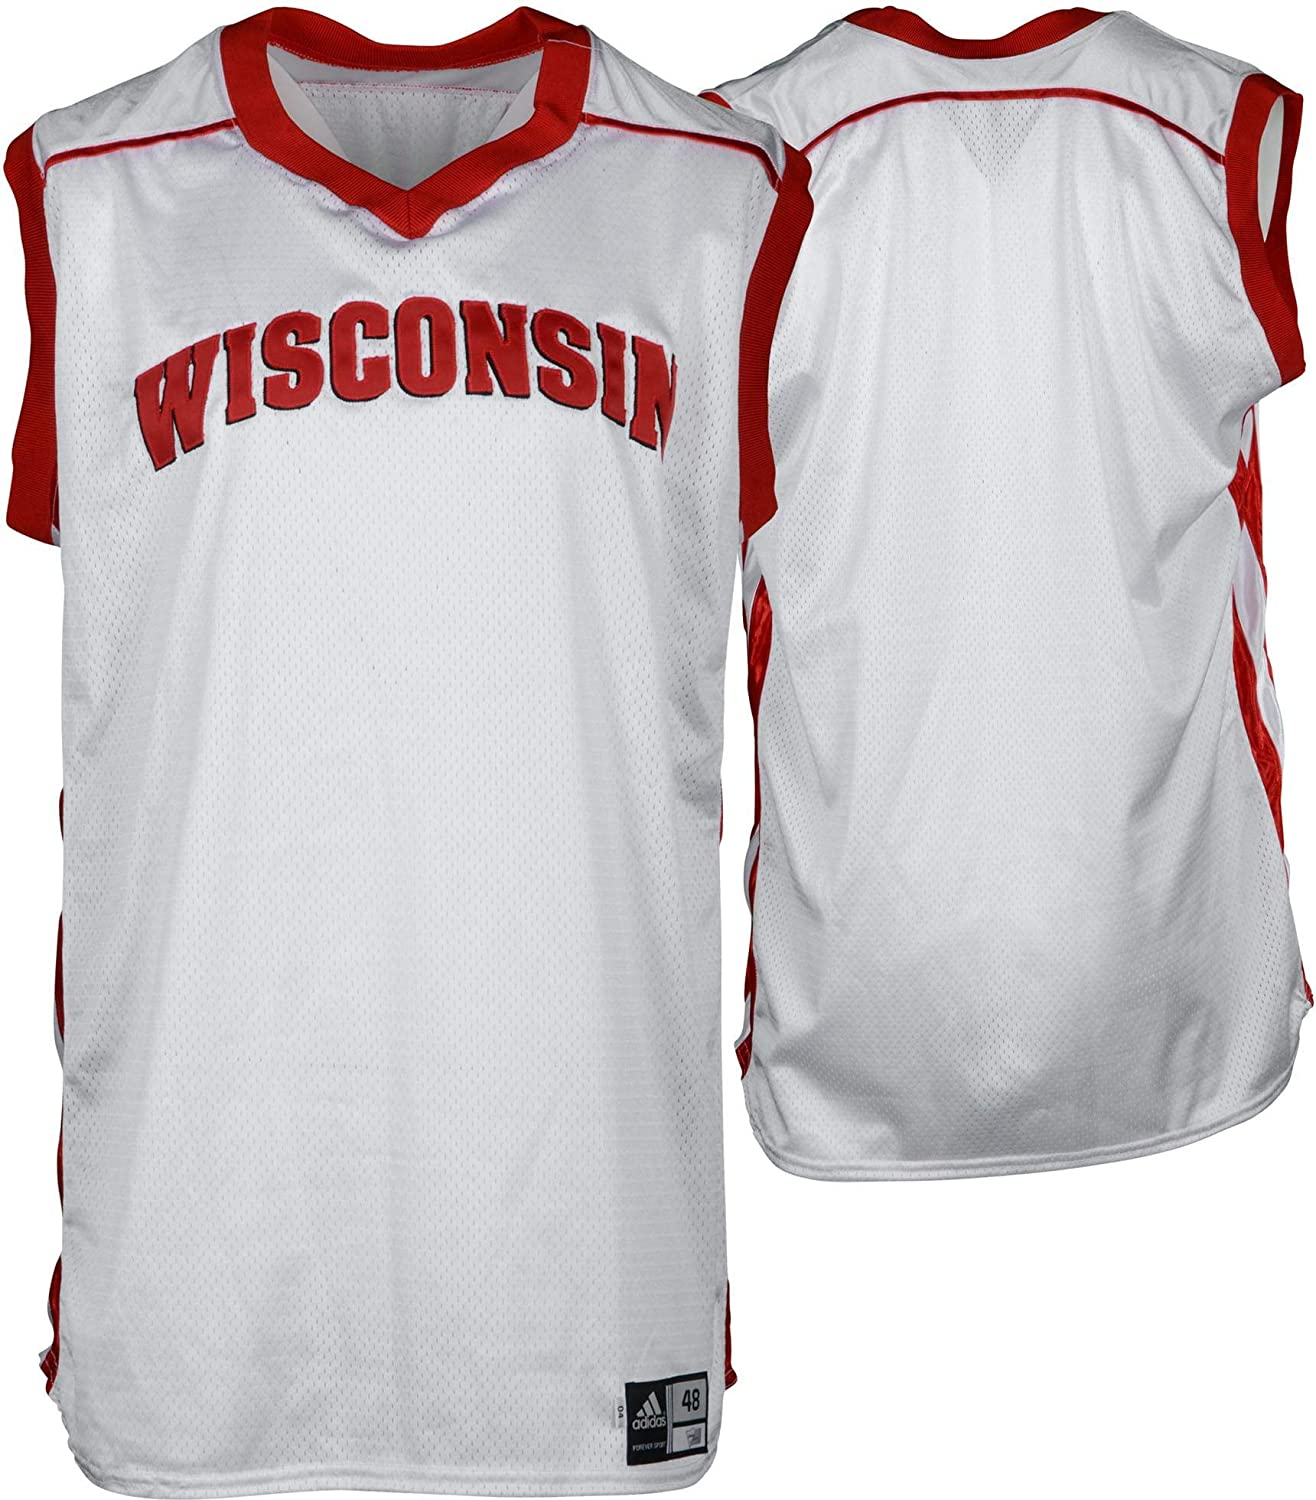 low priced 07764 d92e7 Wisconsin Badgers Team-Issued White Practice Jersey from the ...